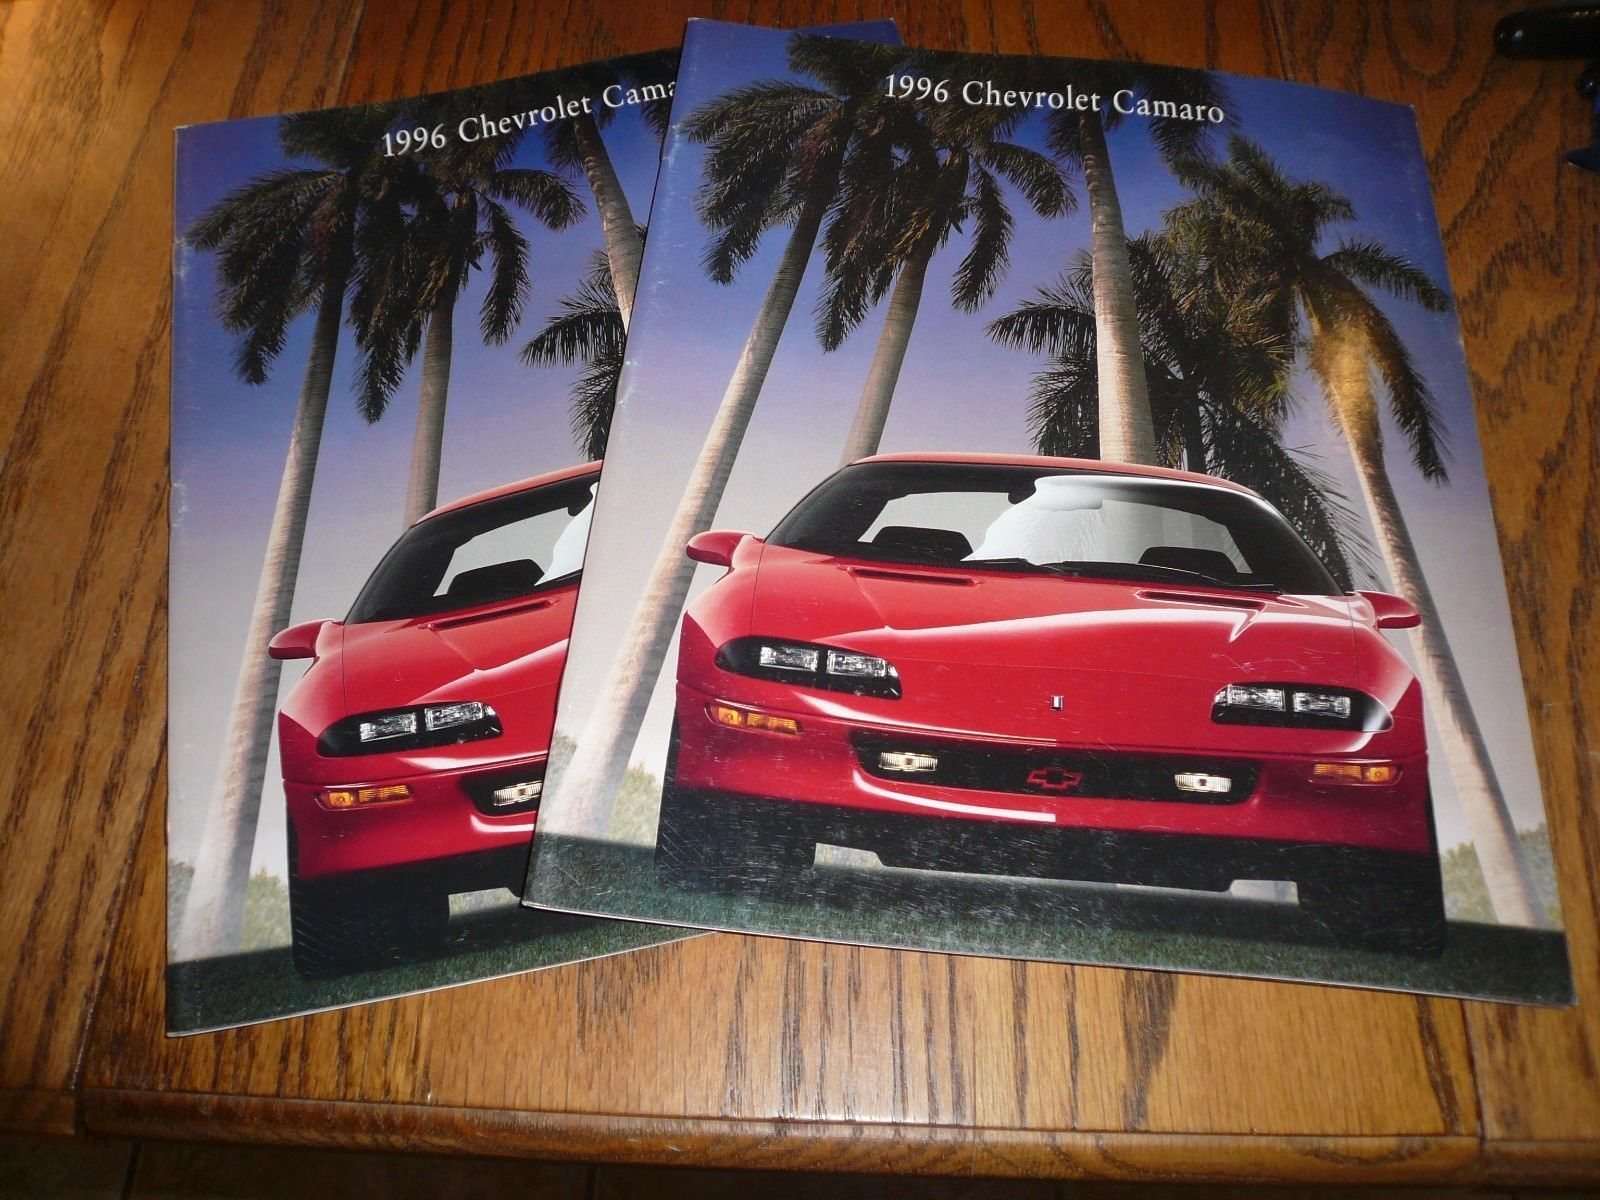 1996 Chevrolet Camaro Sales Brochure And Similar Items 1978 Vintage Two For One Price